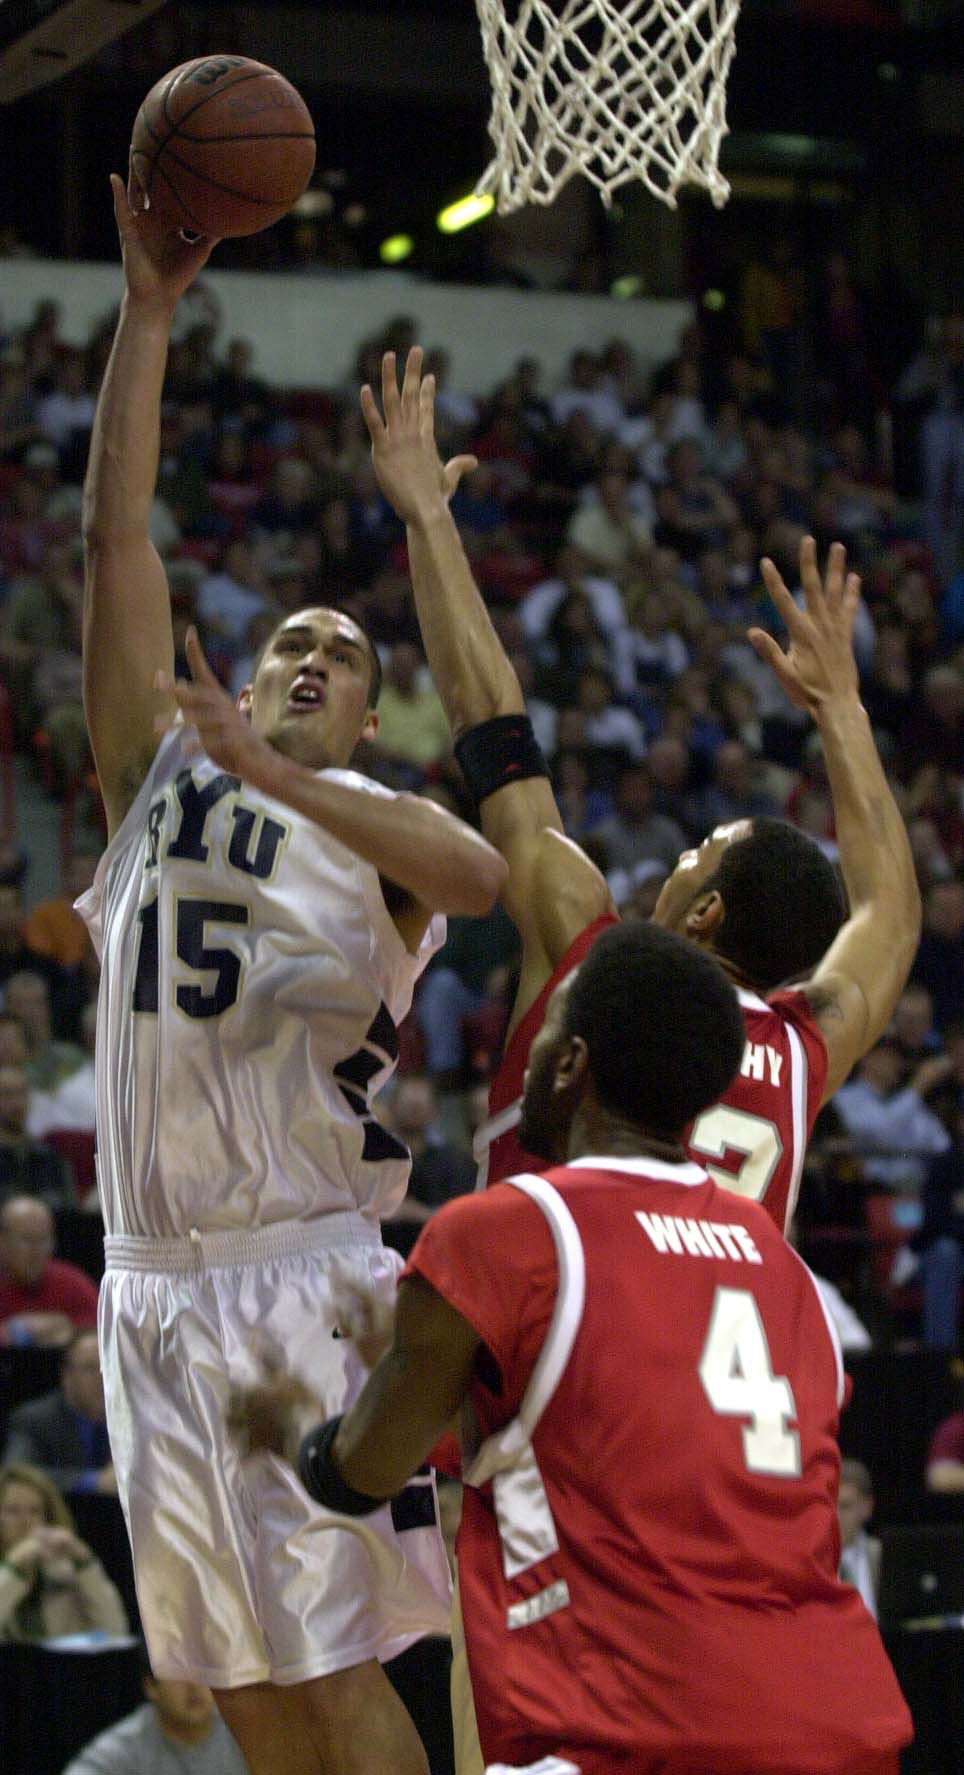 BYU's Mekeli Wesley attempts a shot against Wayland White and Patrick Dennehy of New Mexico at the MWC Tournament in Las Vegas, March 10, 2001.